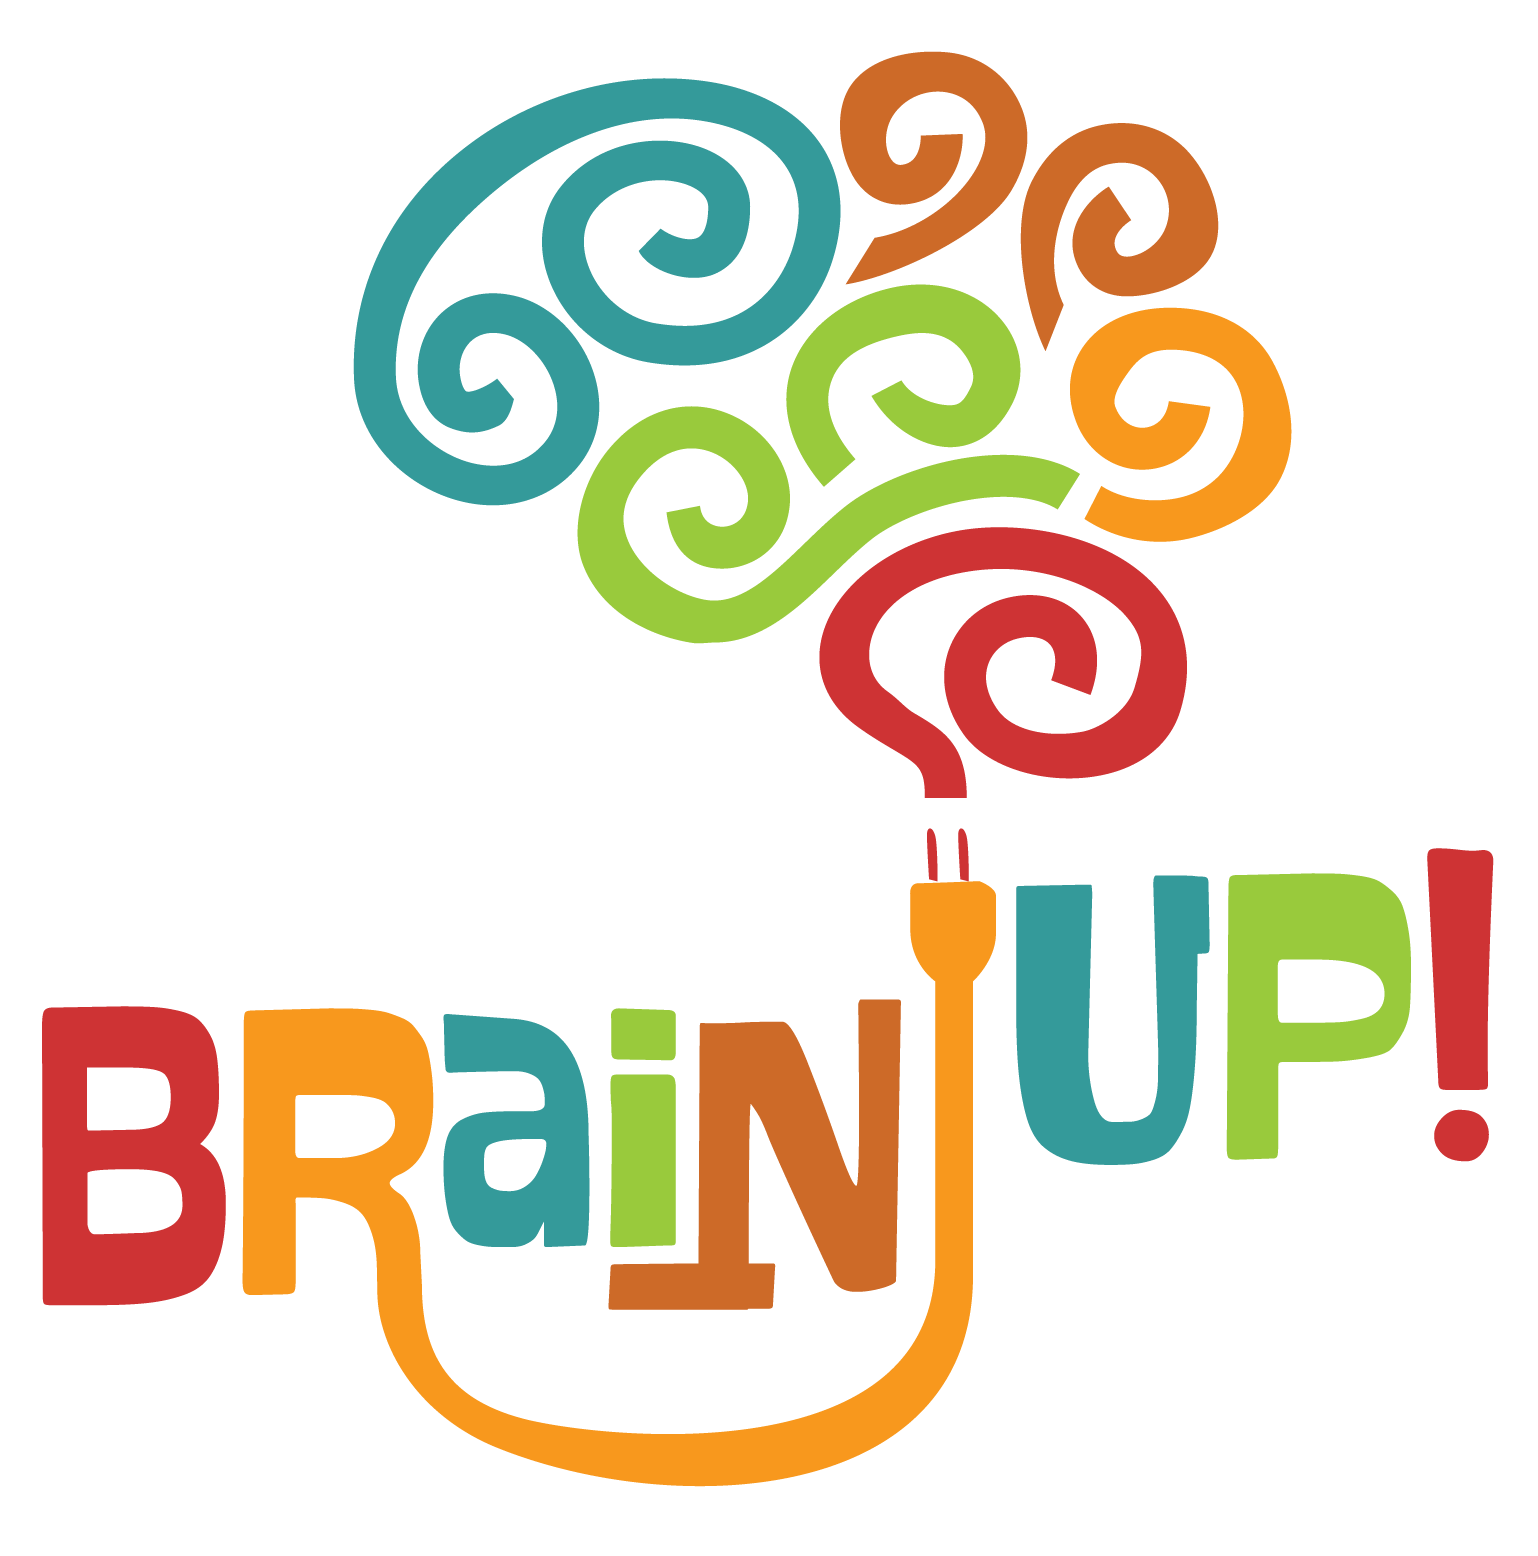 banner freeuse download Brain clipart doodle. Brainup logo wphf